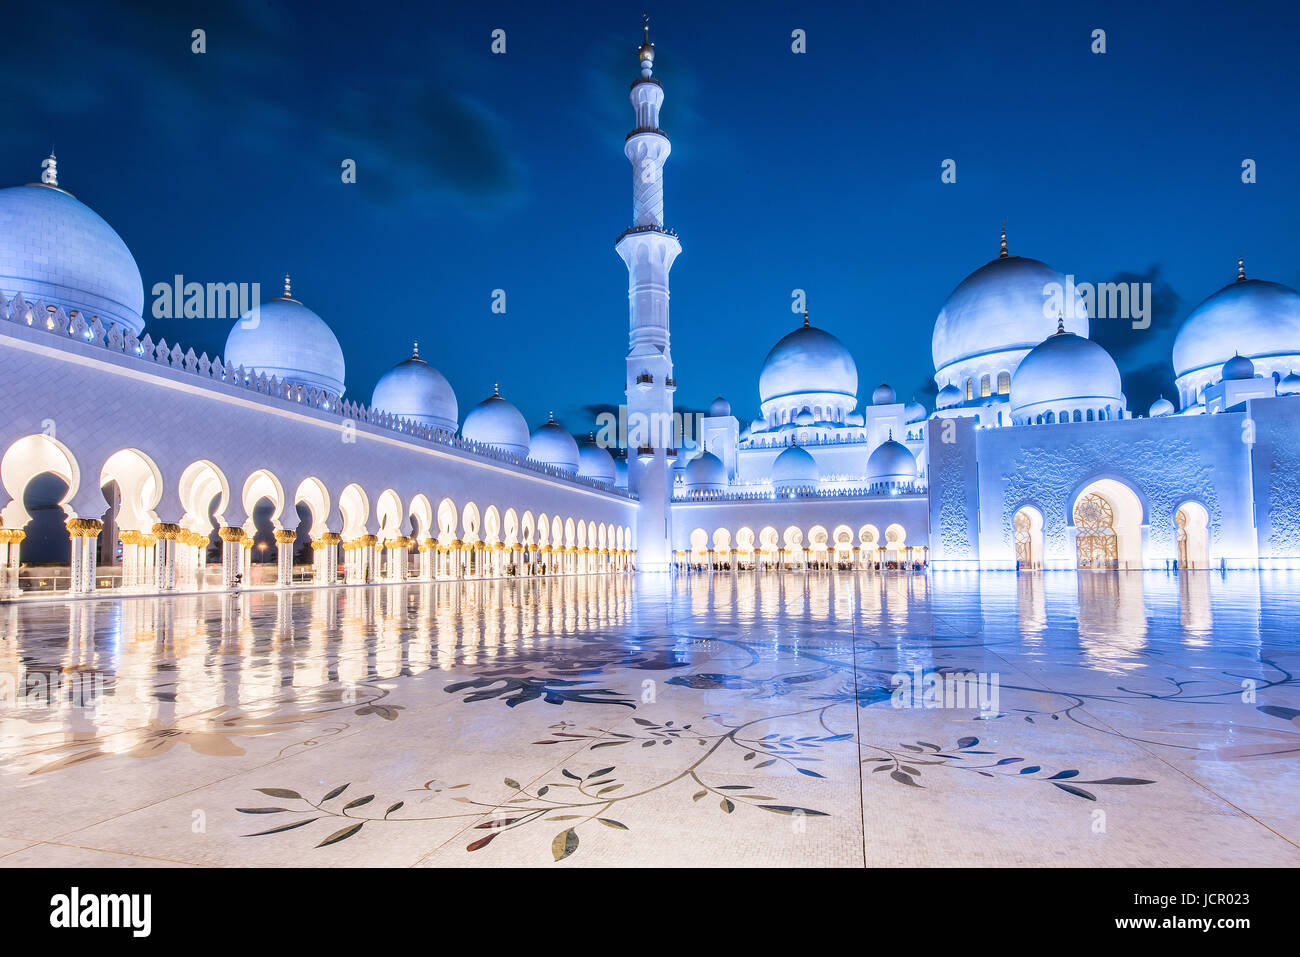 Abu Dhabi Grand Mosque - Stock Image